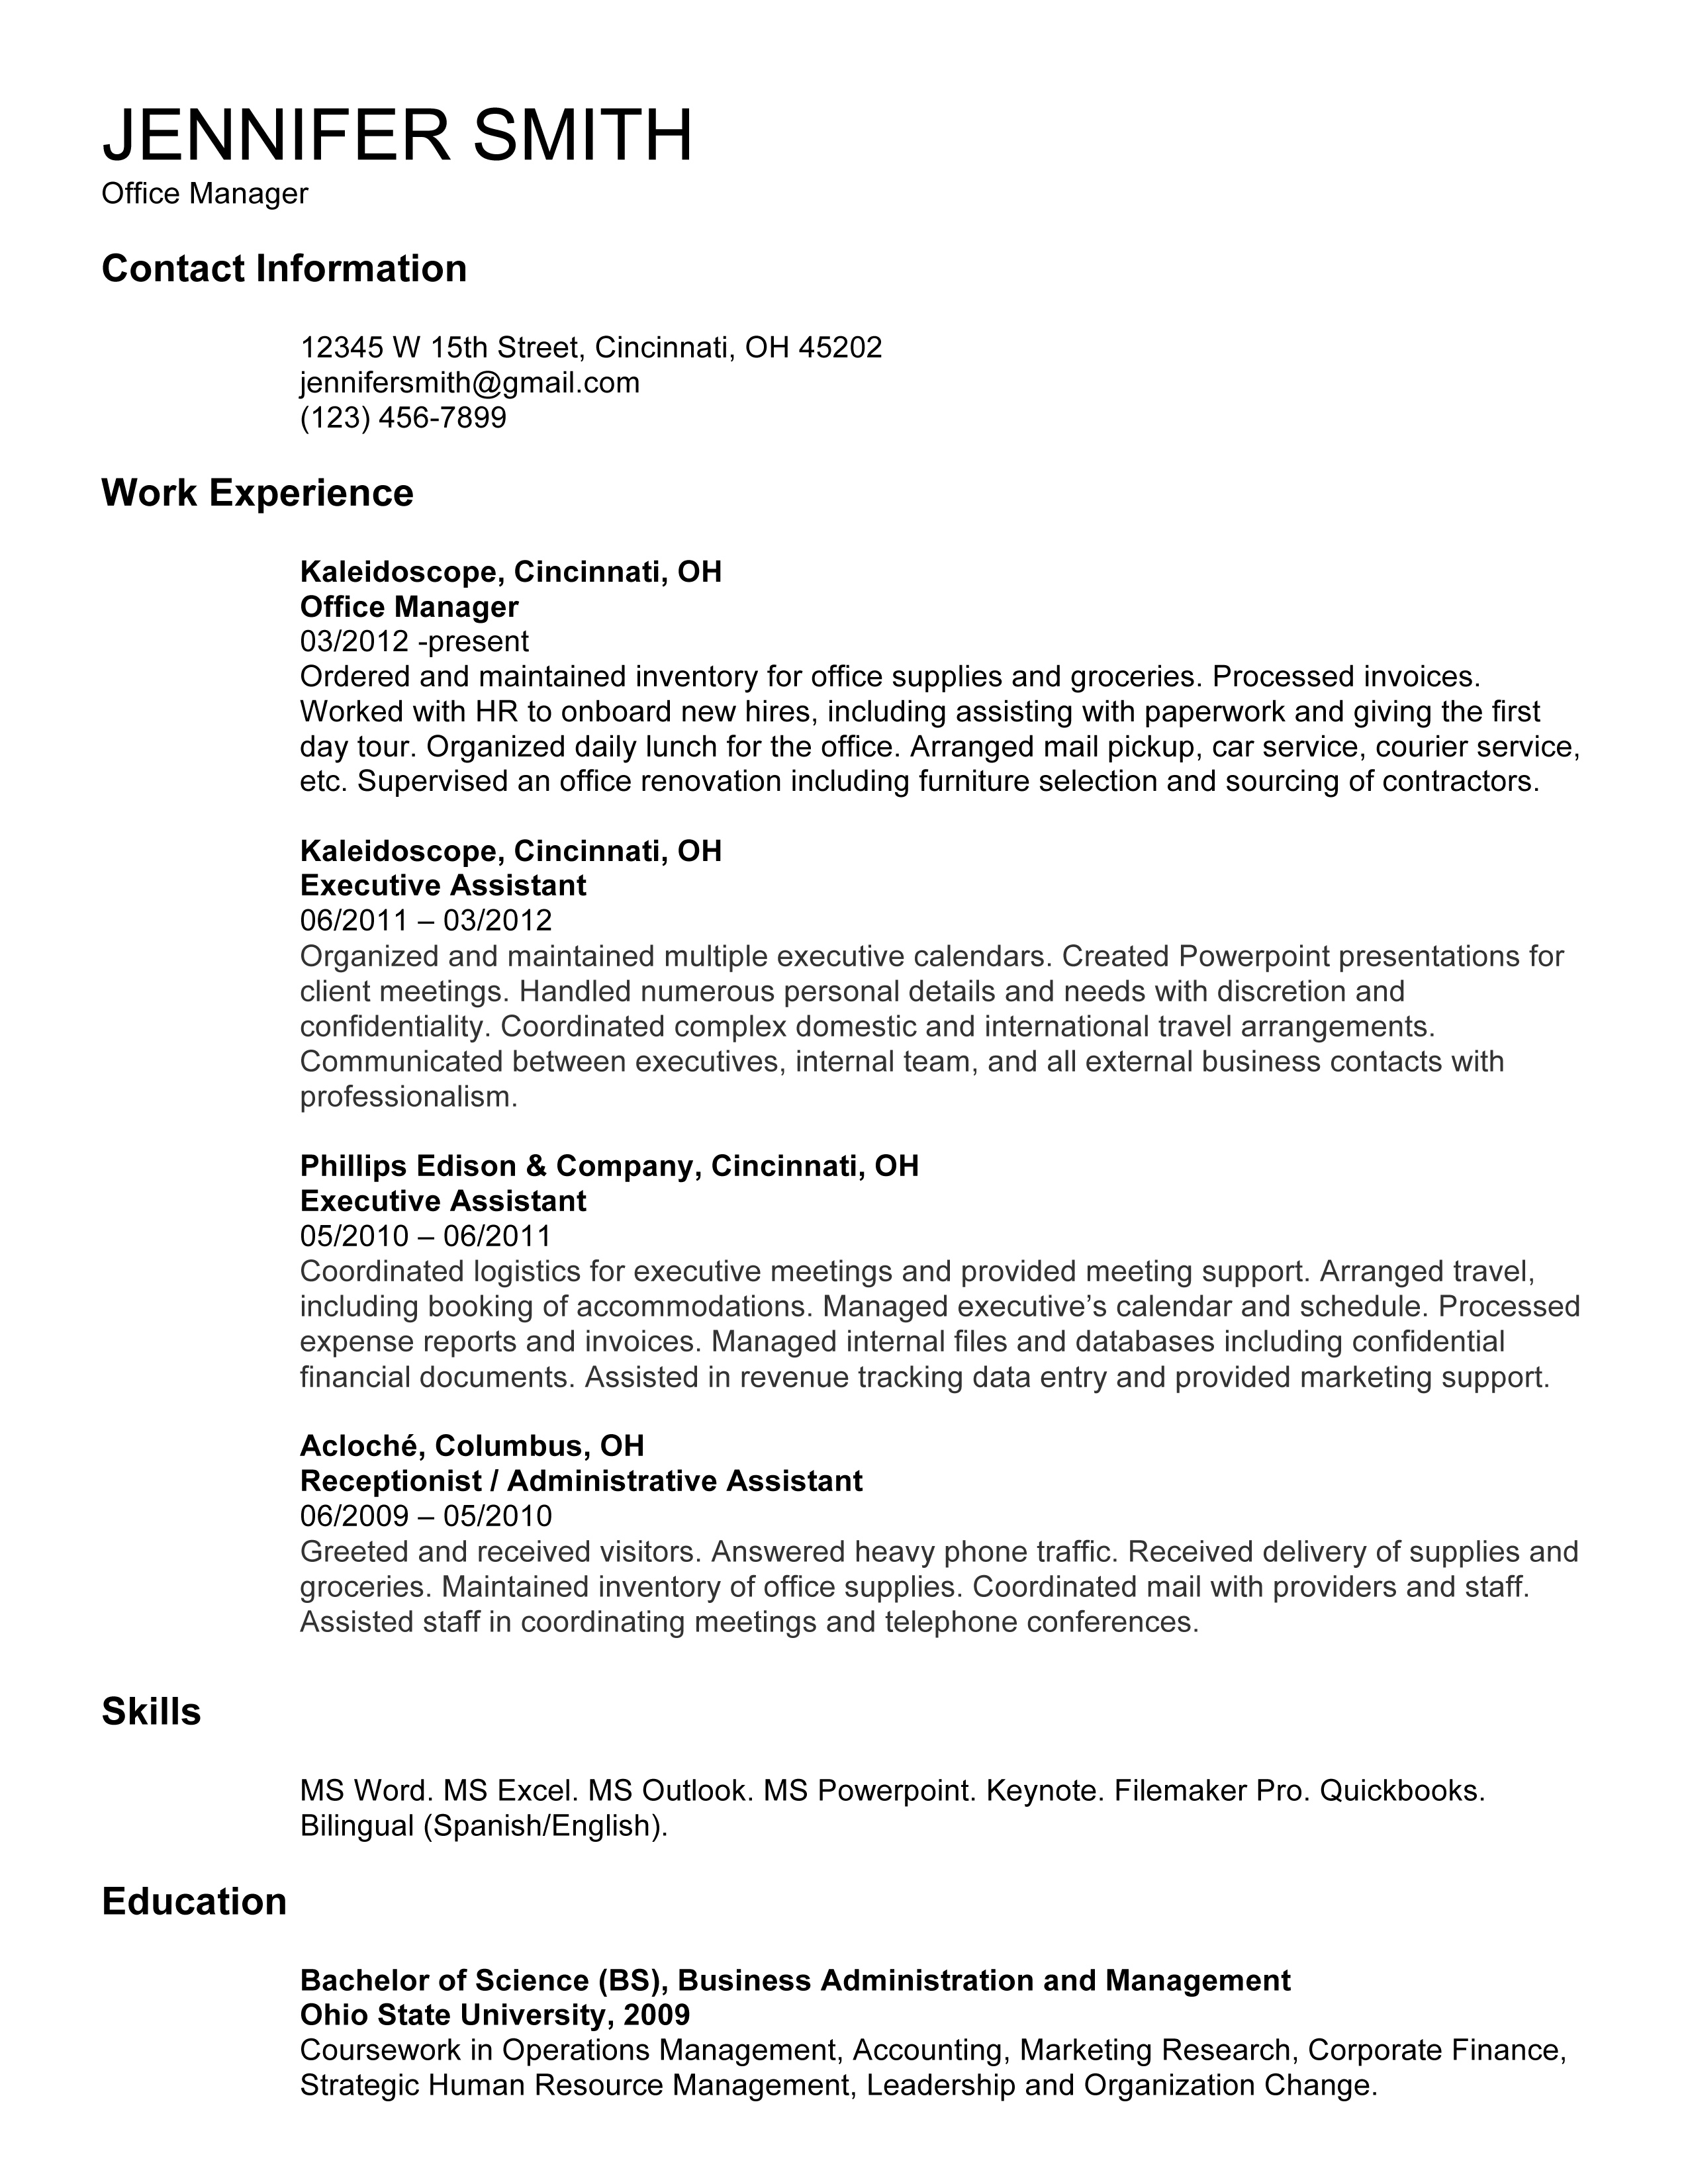 Office Administration Resume Examples This Is An Ideal Resume For An Admin Job Aol Finance